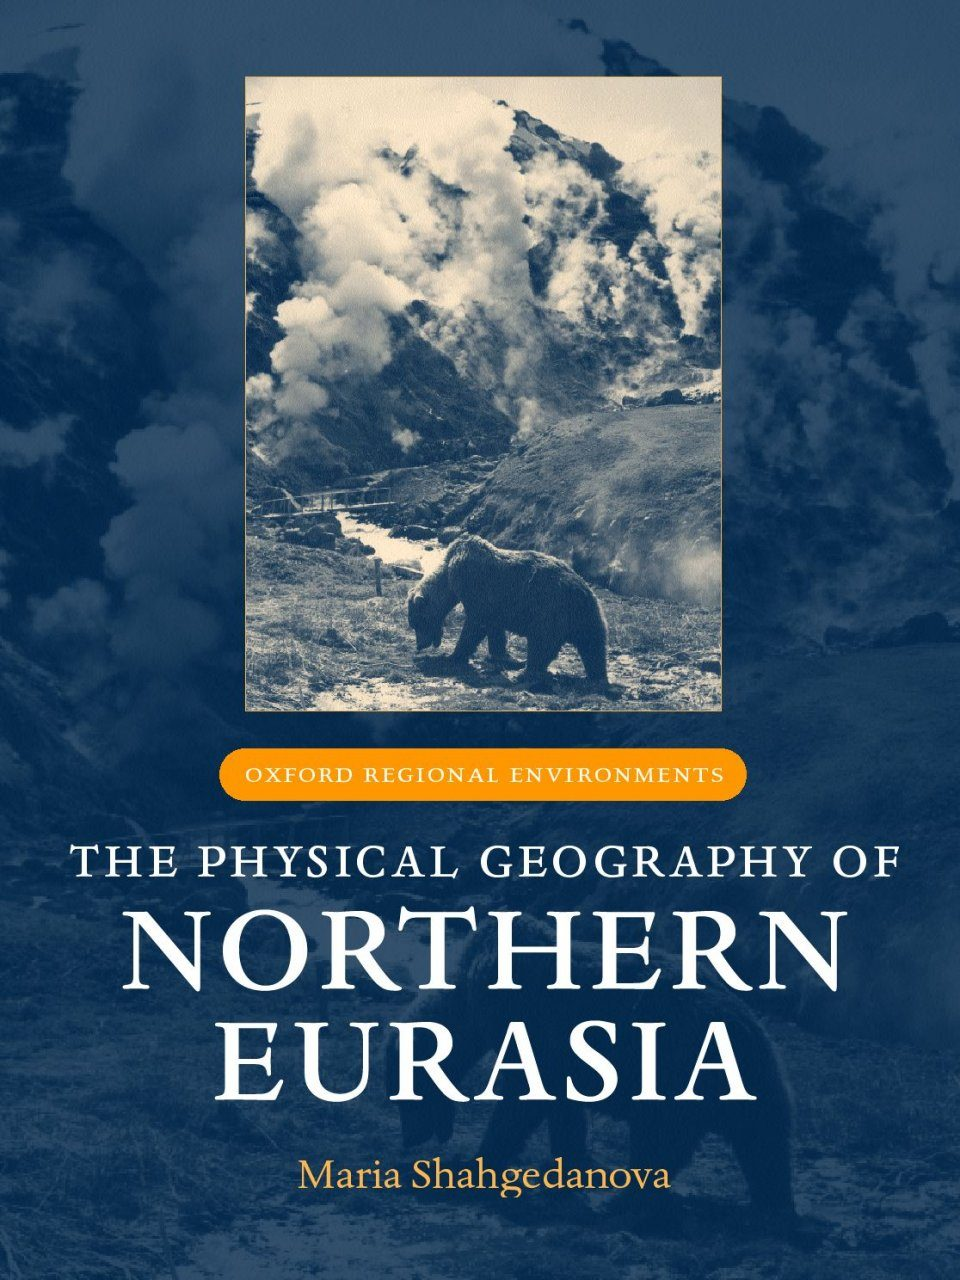 The Physical Geography of Northern Eurasia